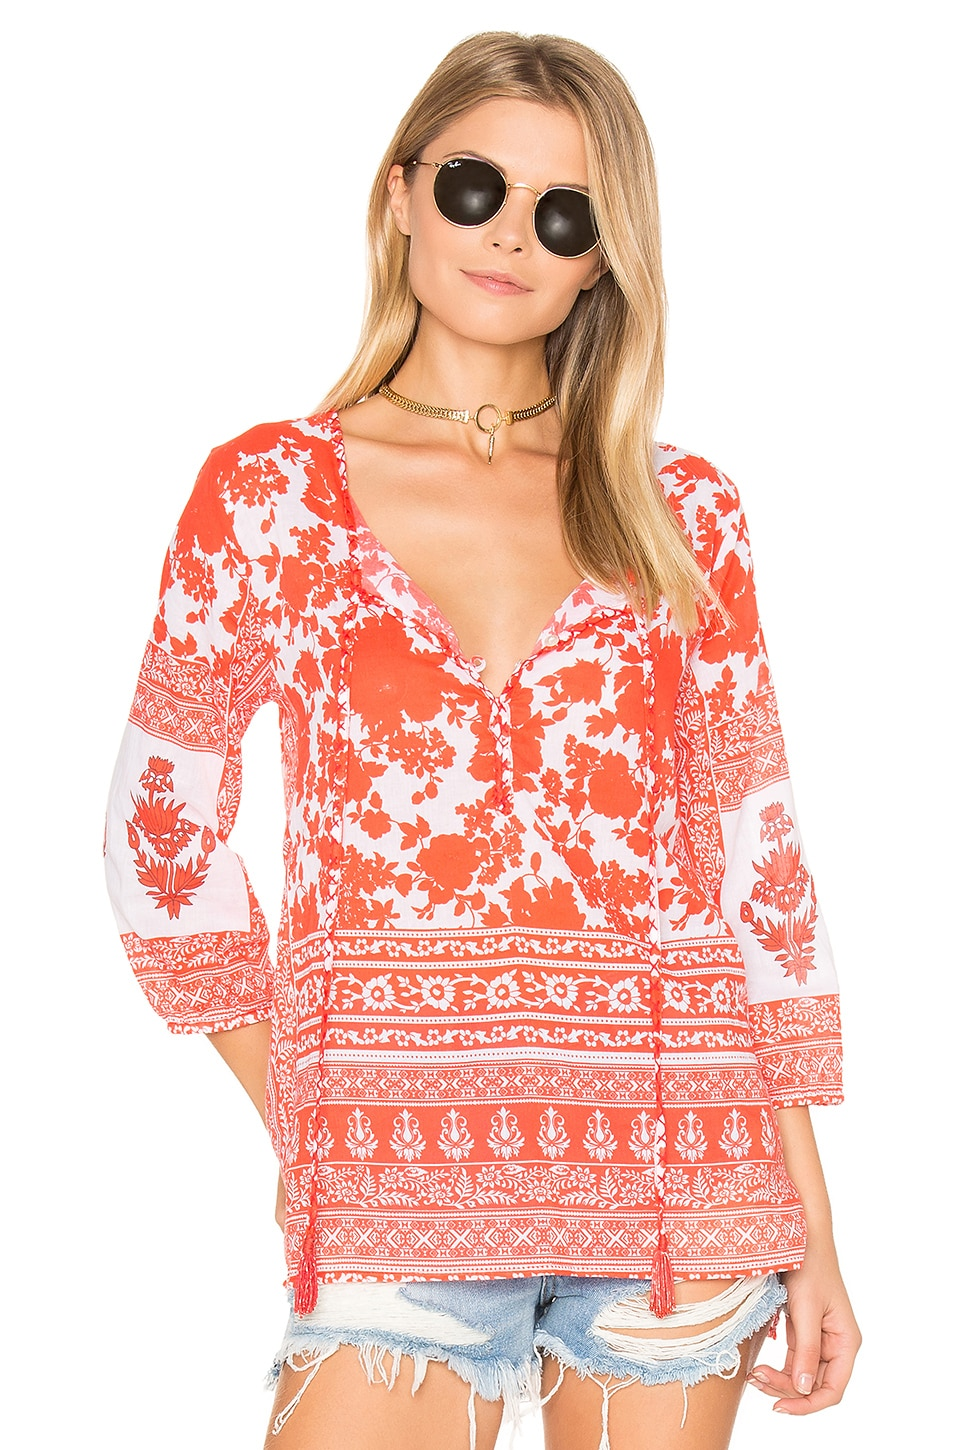 Tolani Sienna Top in Poppy